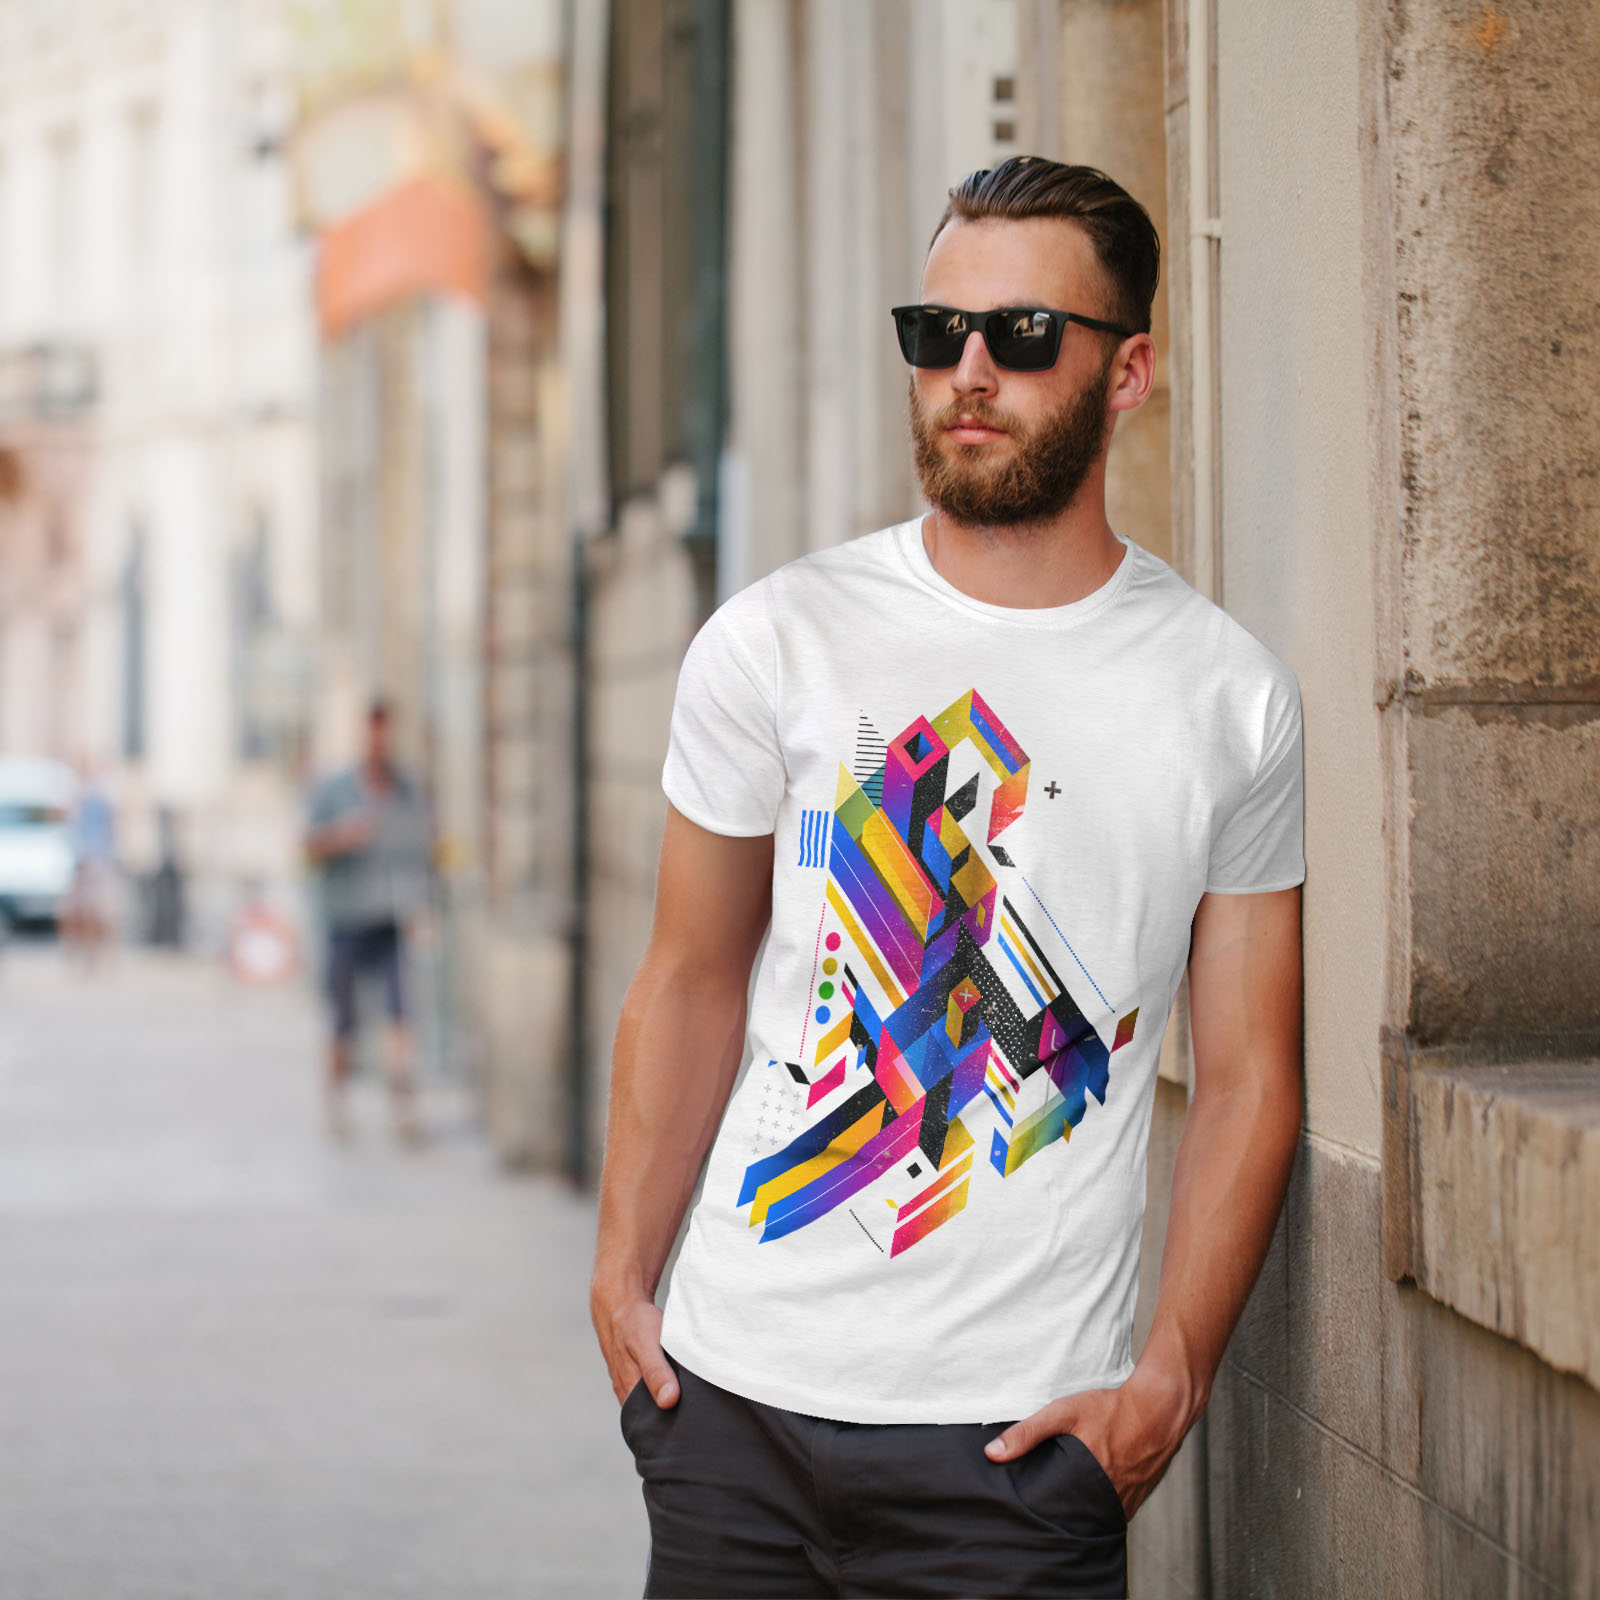 Wellcoda-Abstract-Maze-T-shirt-homme-Labyrinthe-conception-graphique-imprime-Tee miniature 11